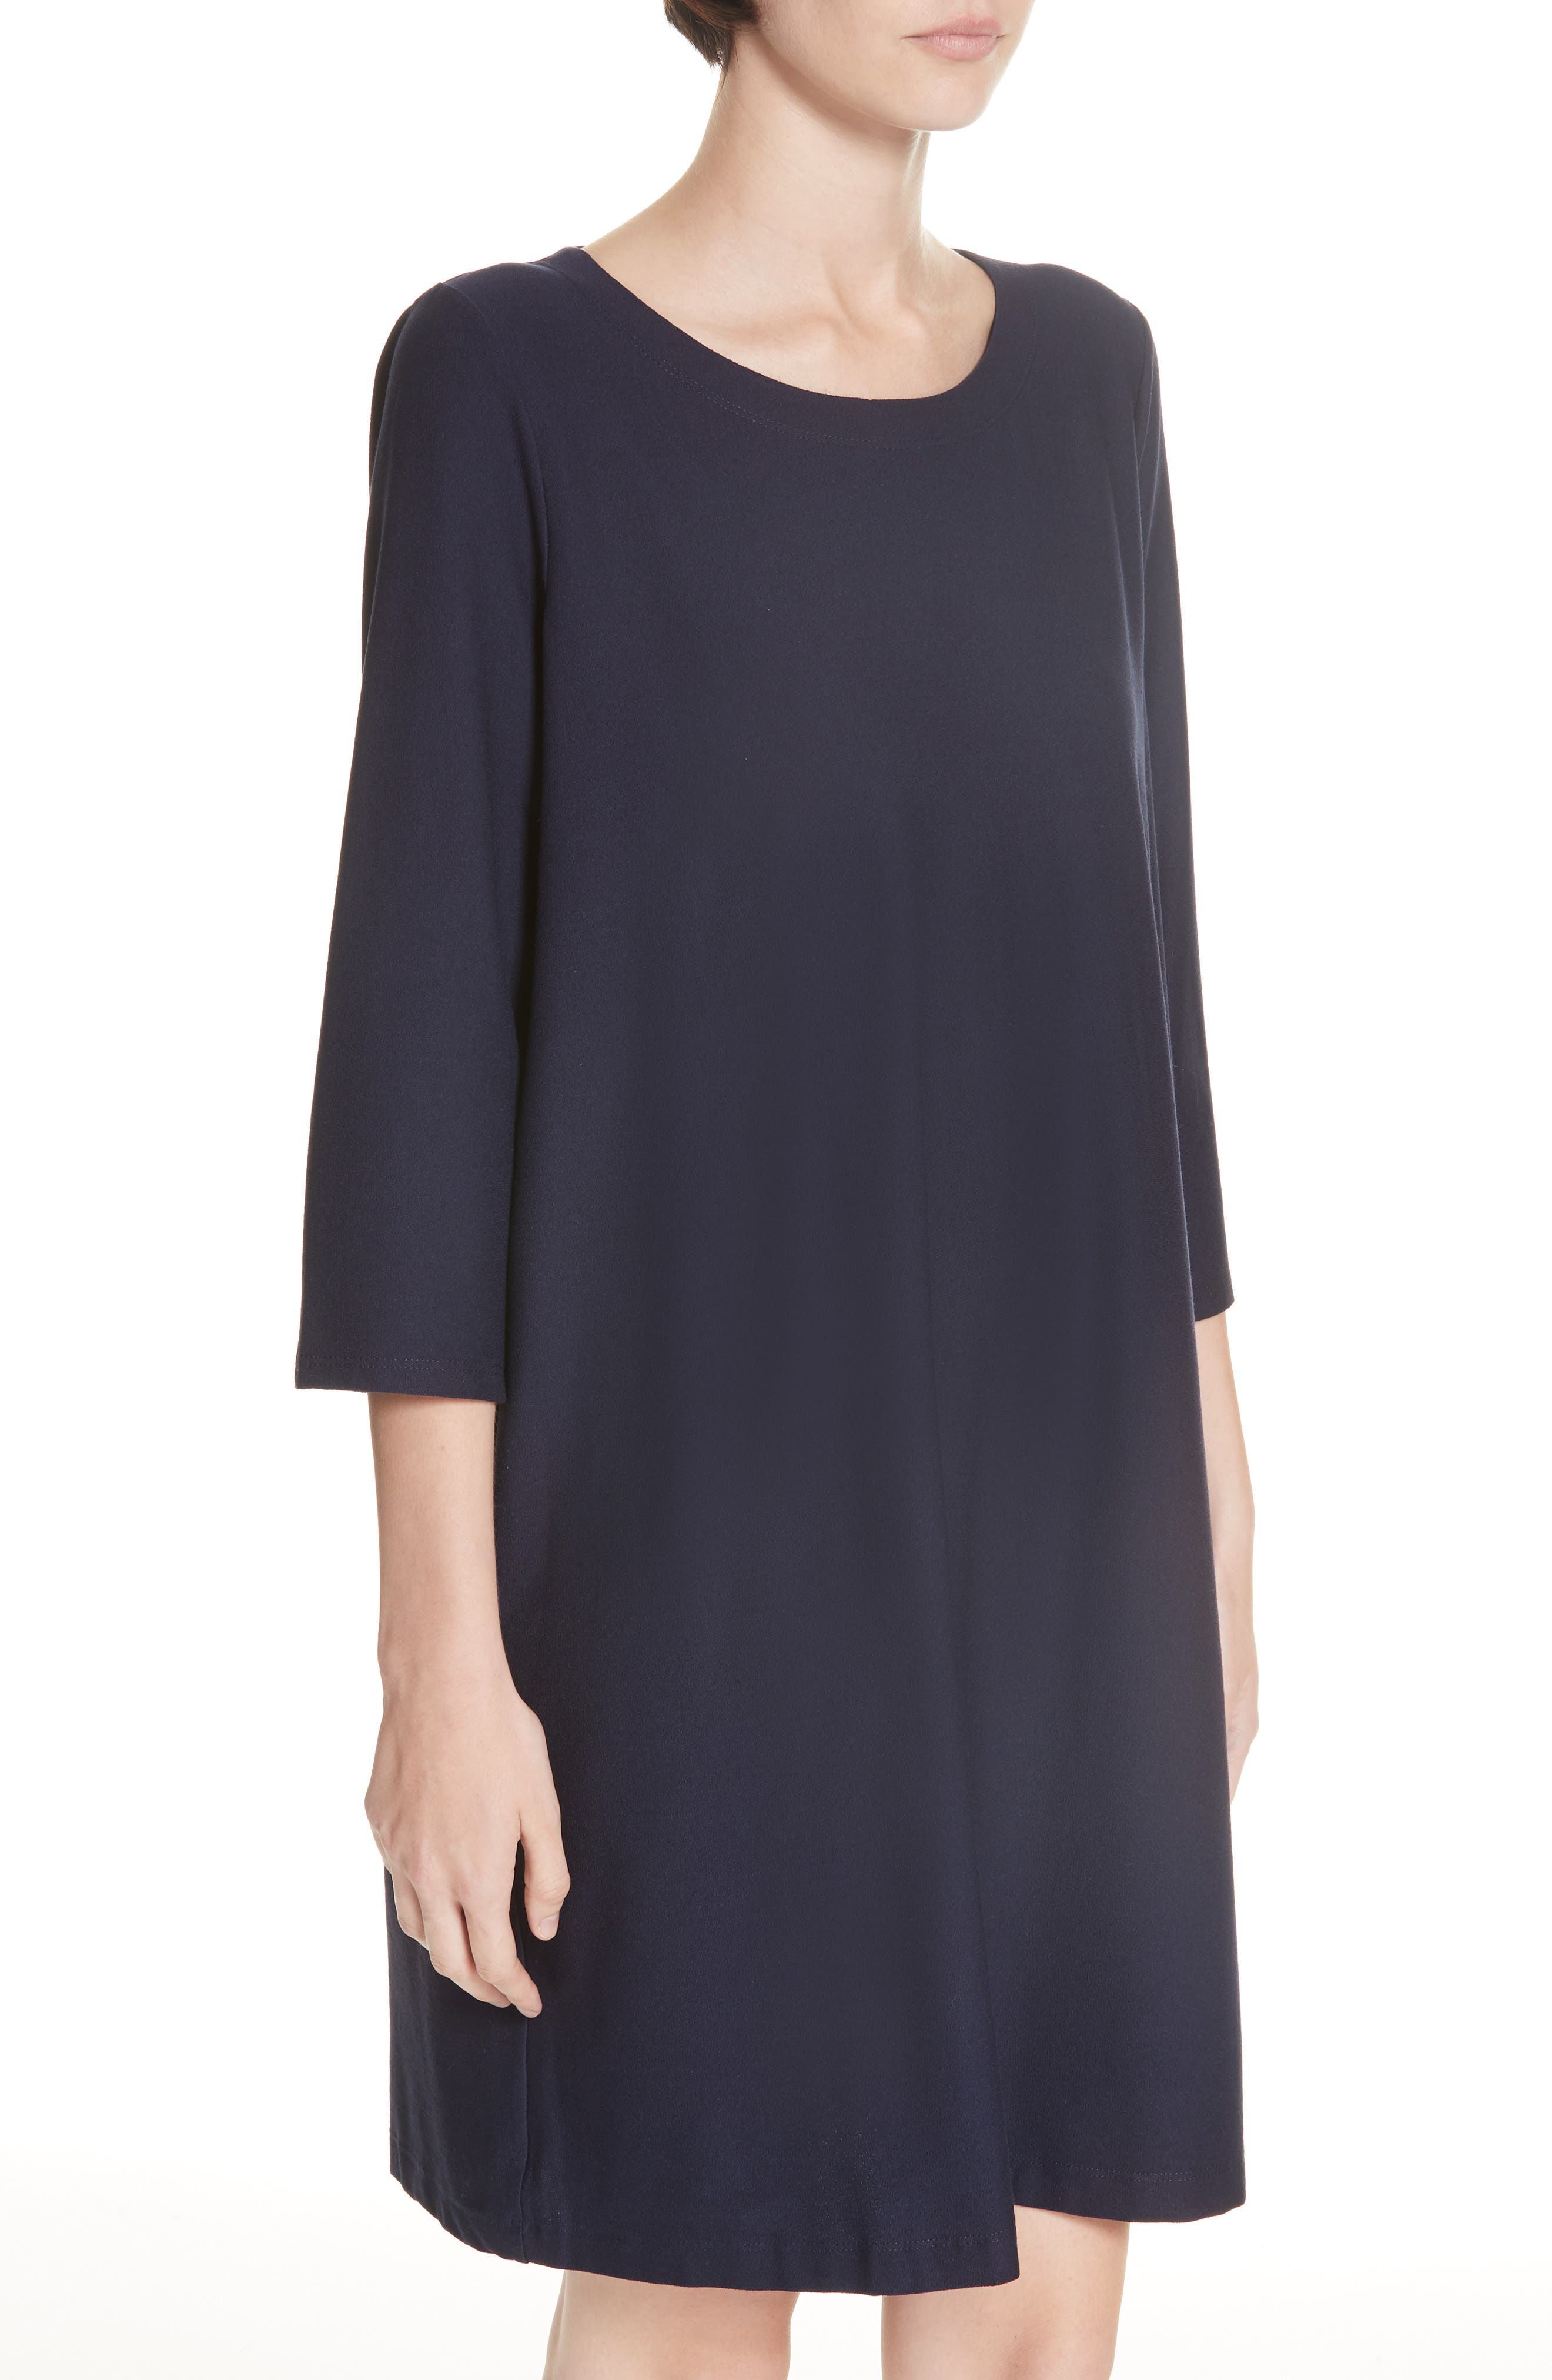 Scoop Neck Knee Length Shift Dress,                             Alternate thumbnail 4, color,                             MIDNIGHT